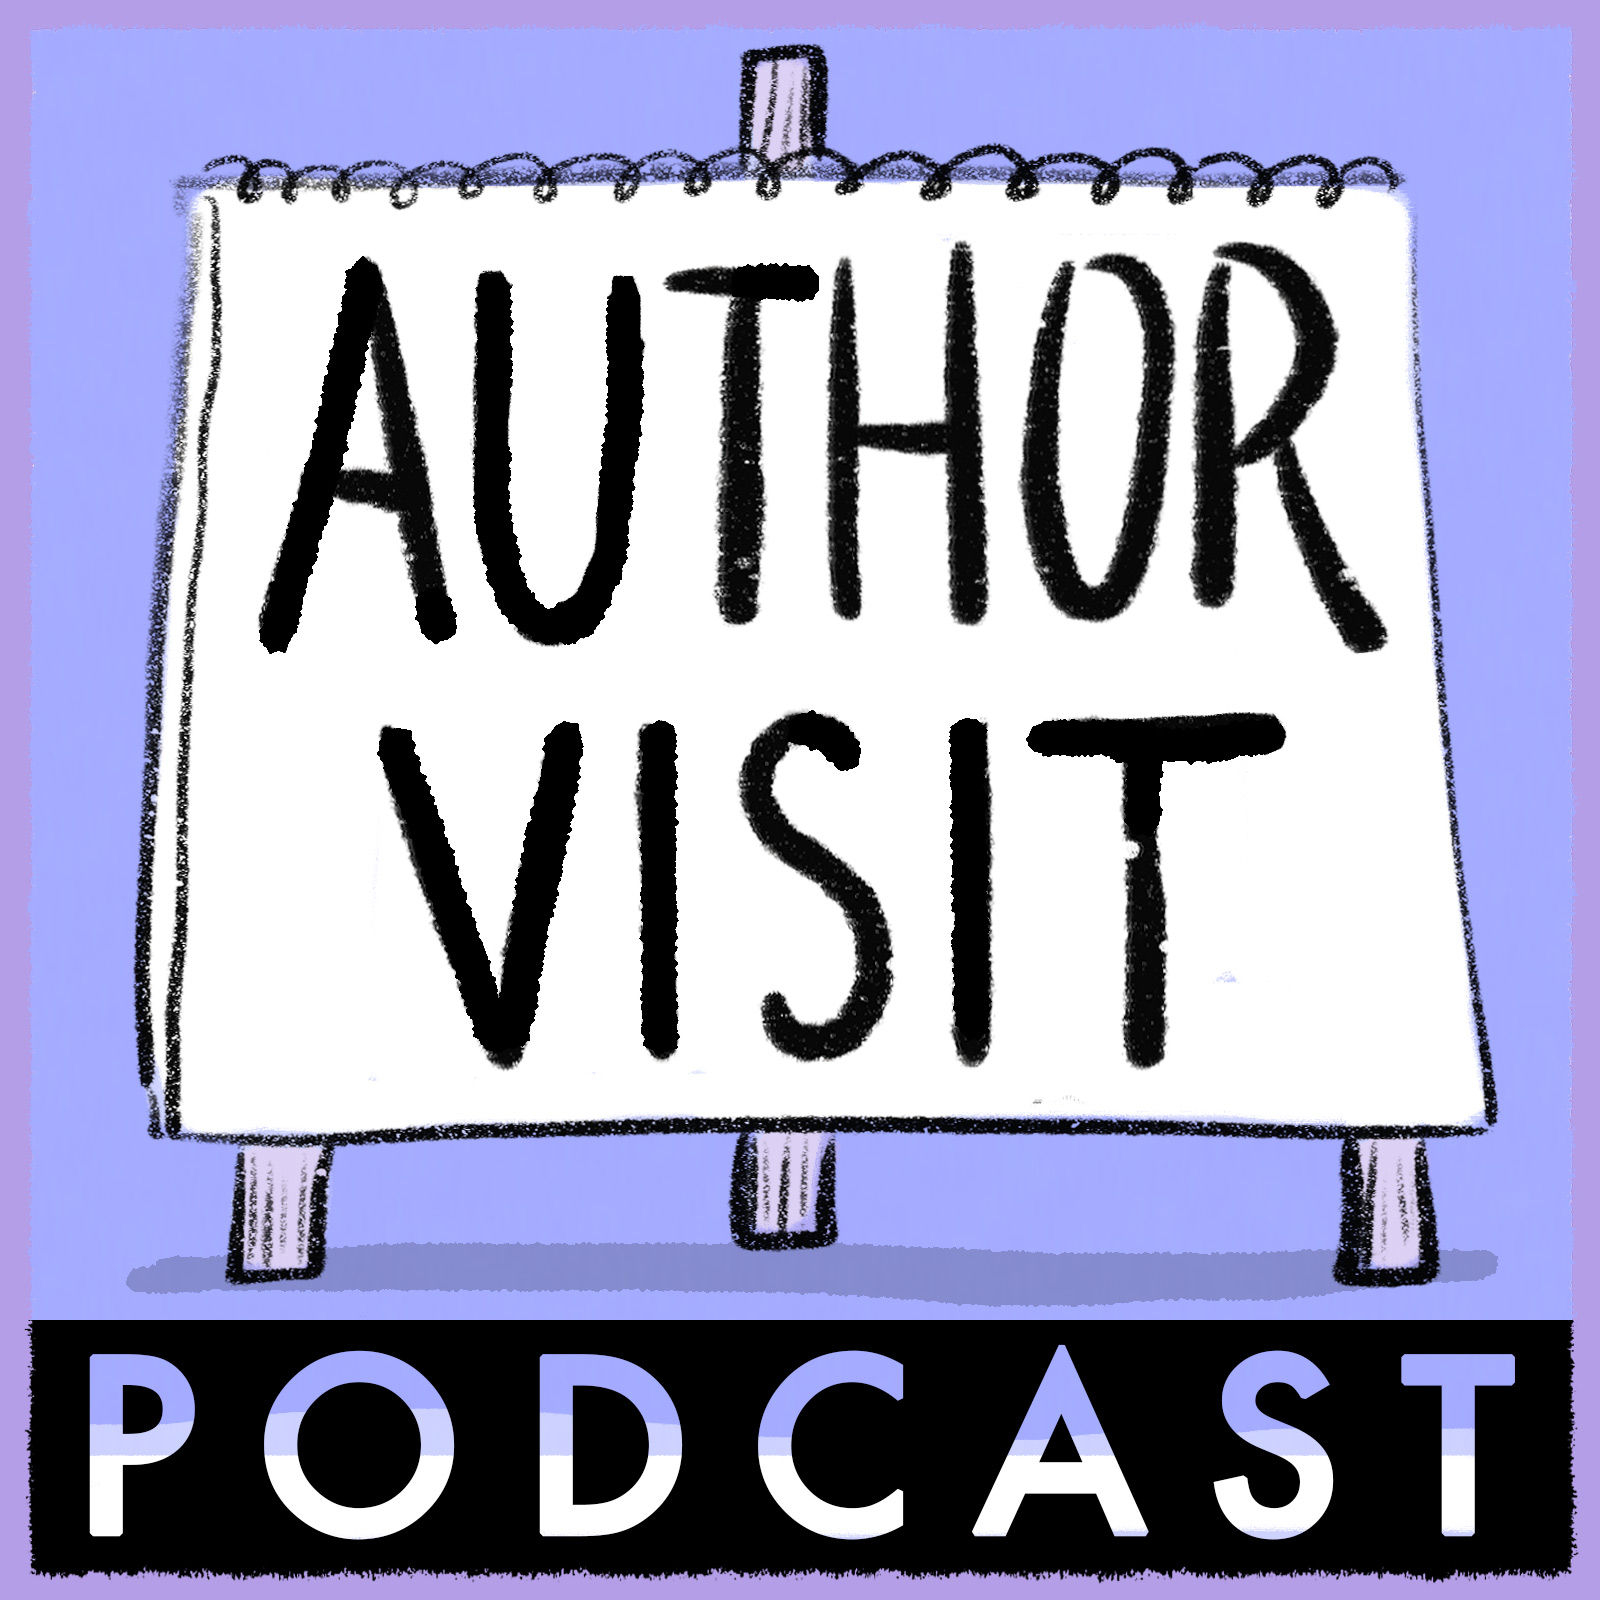 Listen to Jennifer and me on the Author Visit Podcast!